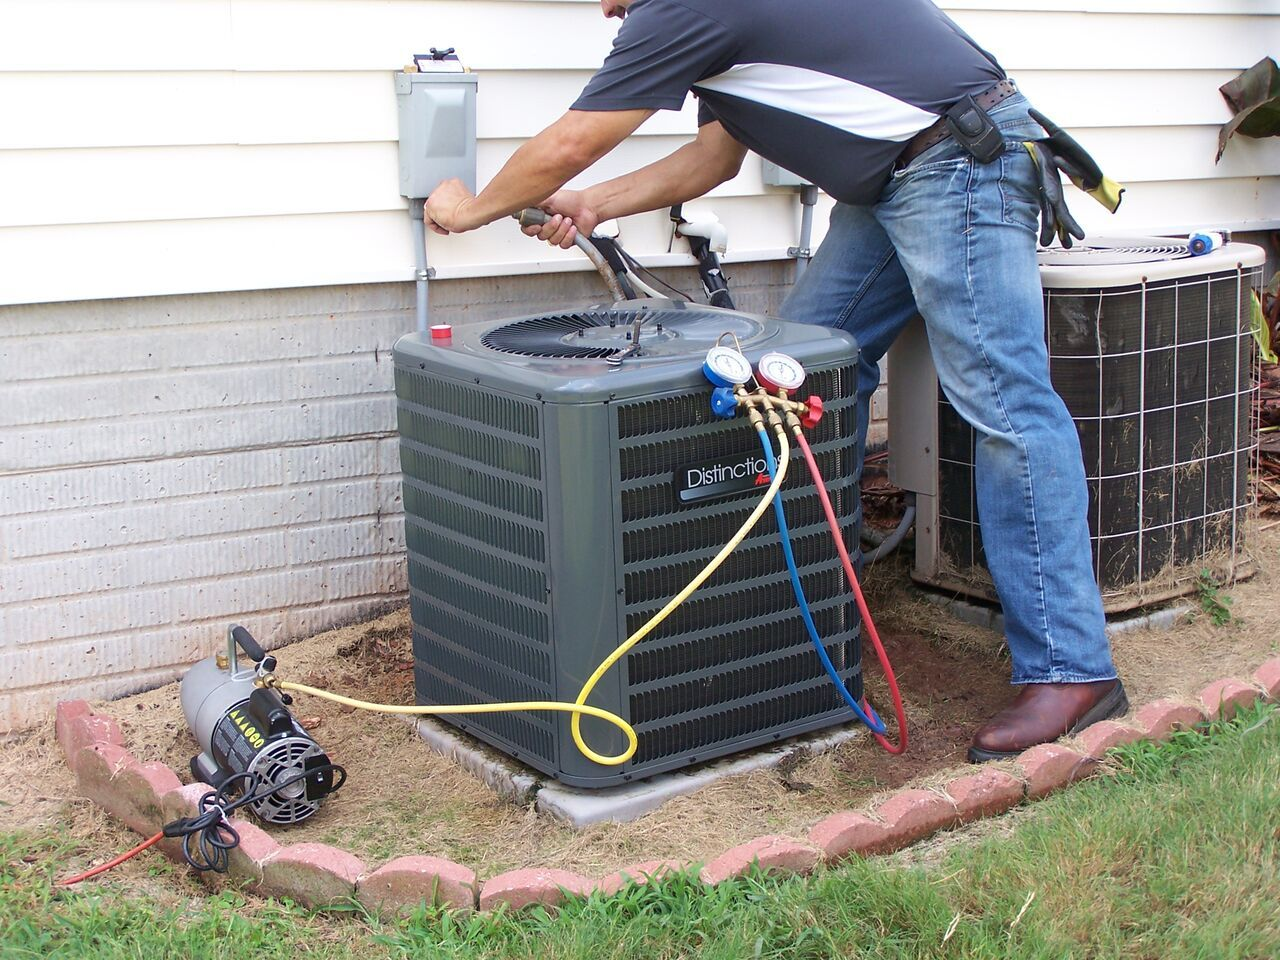 Area wide services inc offers emergency repair and house